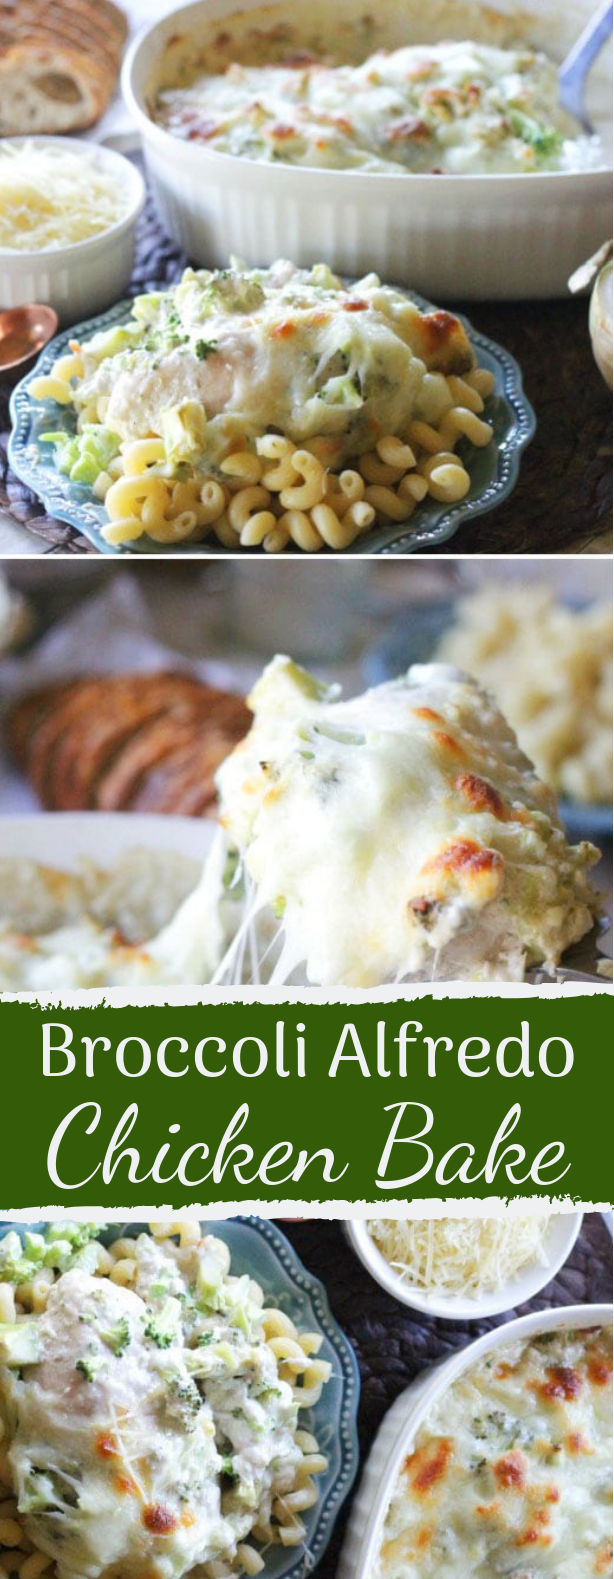 Broccoli Alfredo Chicken Bake #keto #healthyrecipe